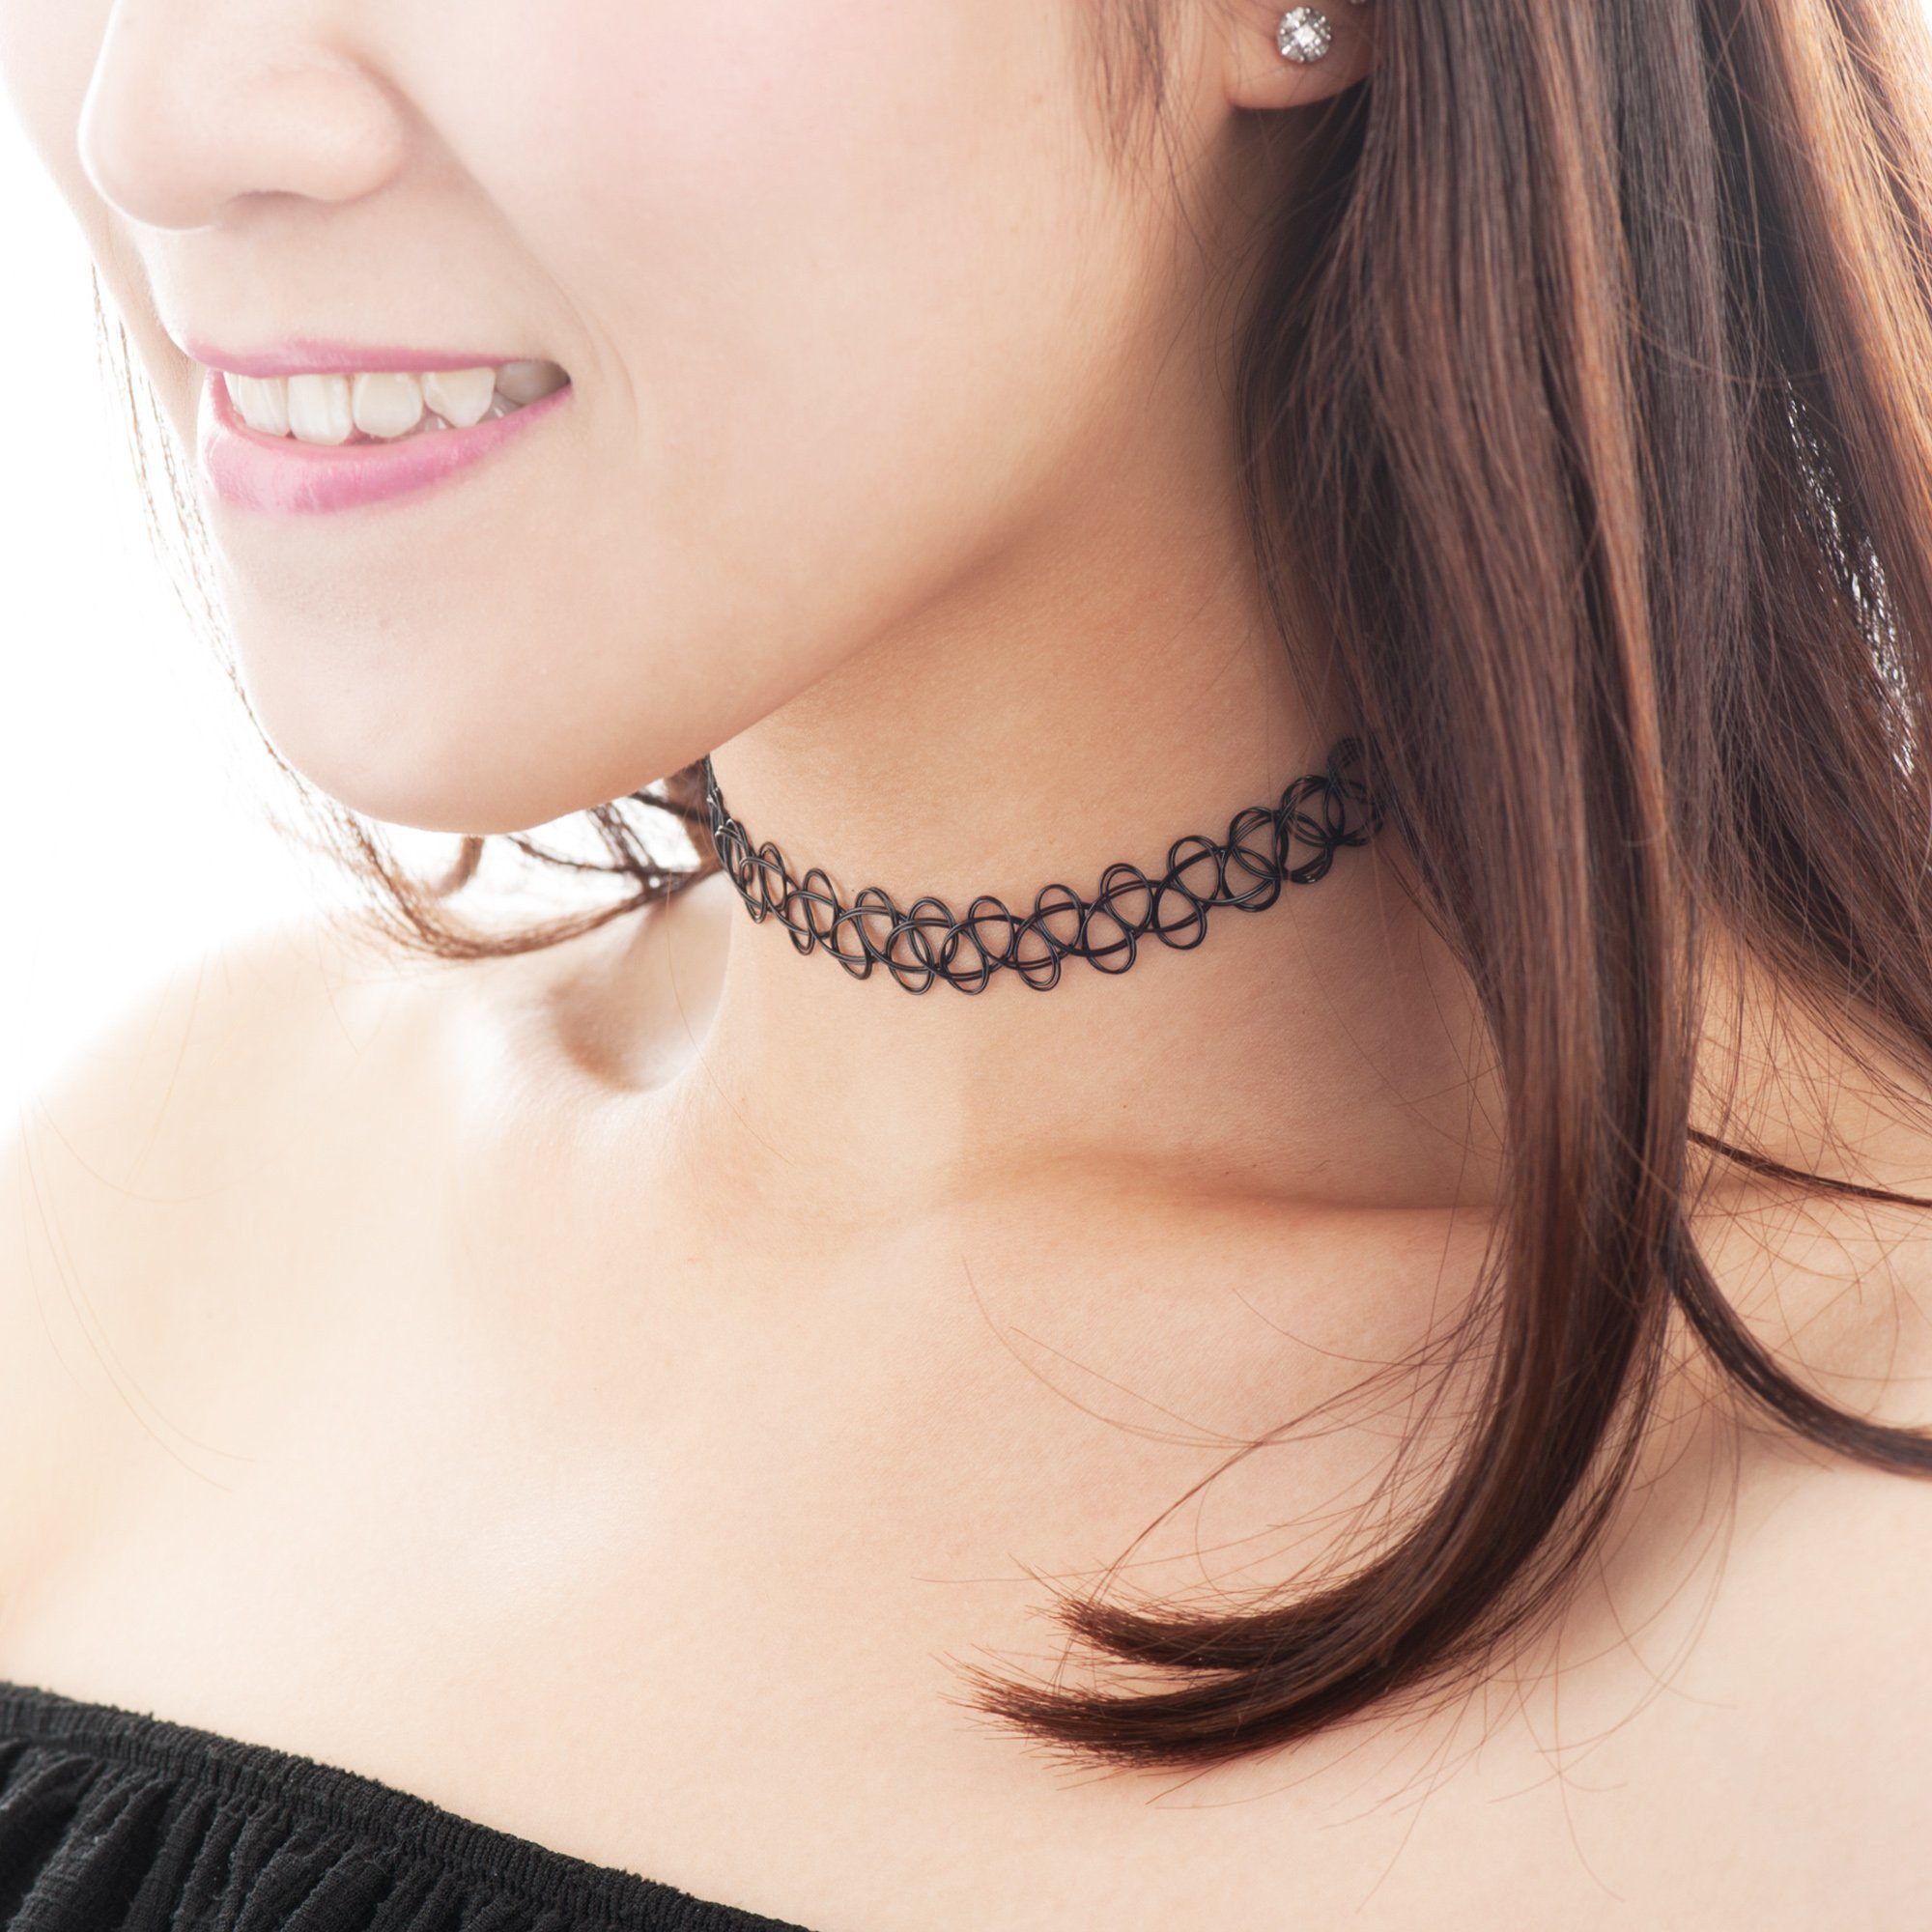 Tattoo Choker Necklaces